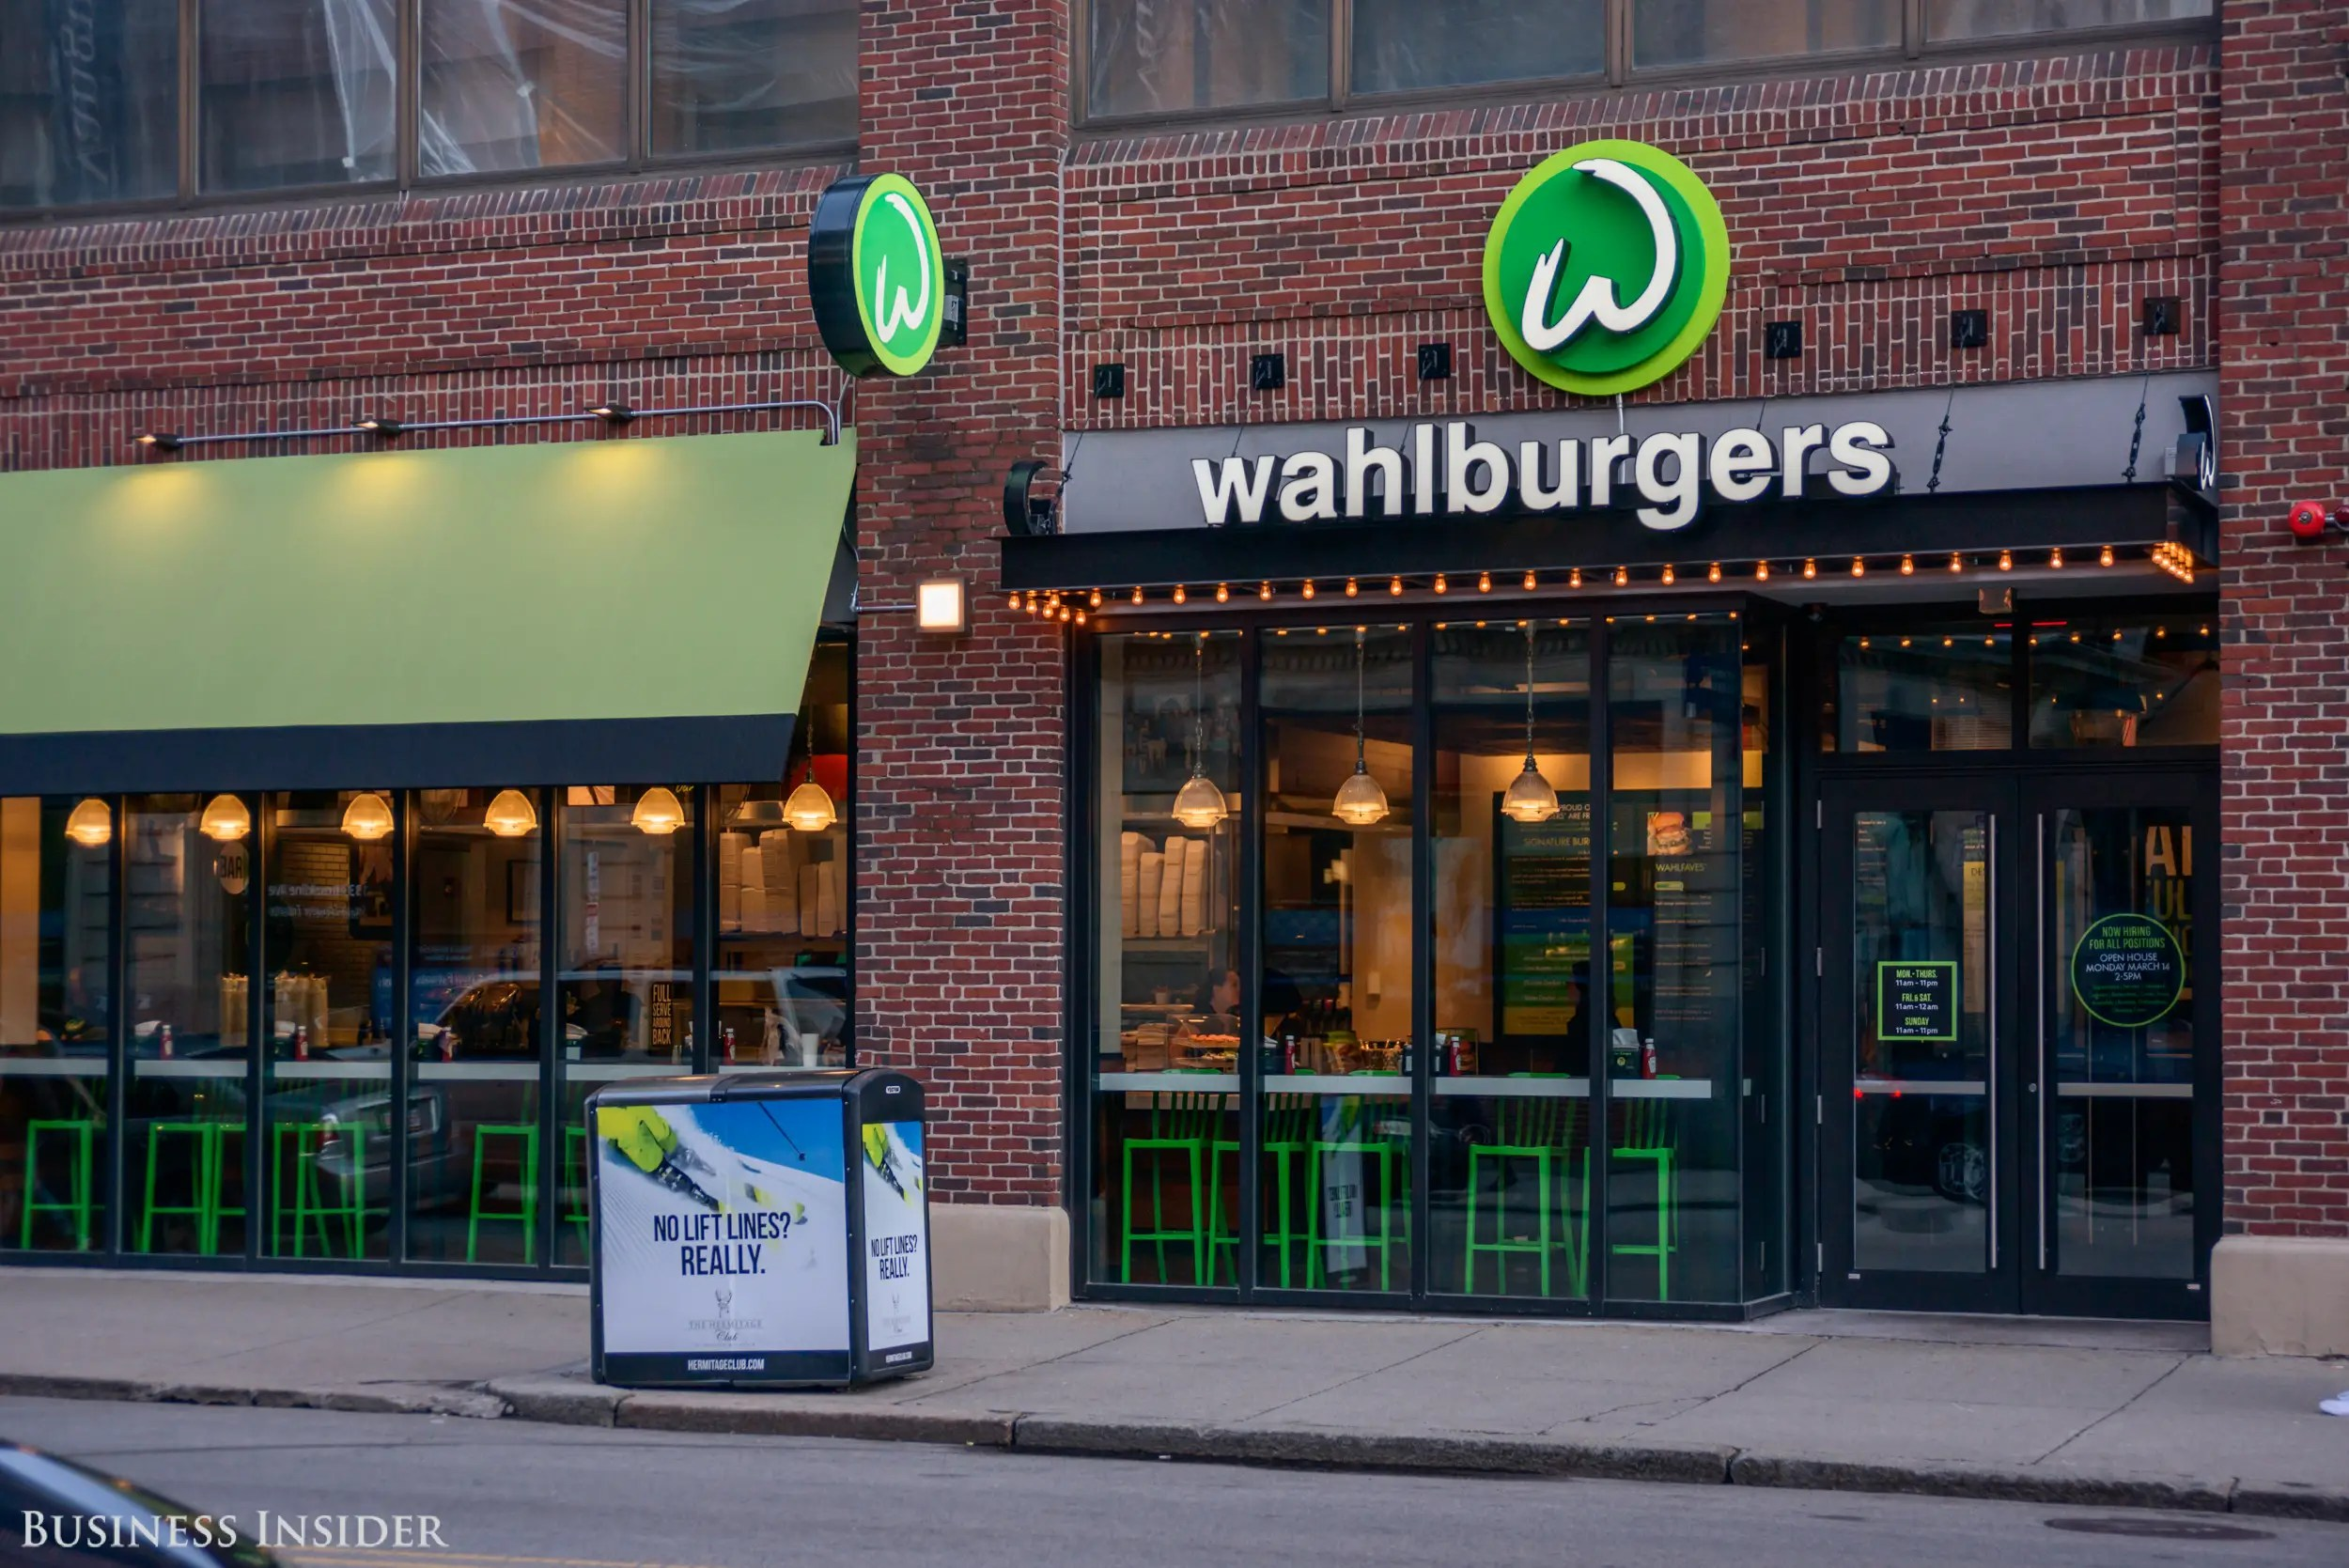 On a recent trip to Boston, I visited the Wahlburgers location in the Fenway neighborhood, just a stone's throw from historic Fenway Park.